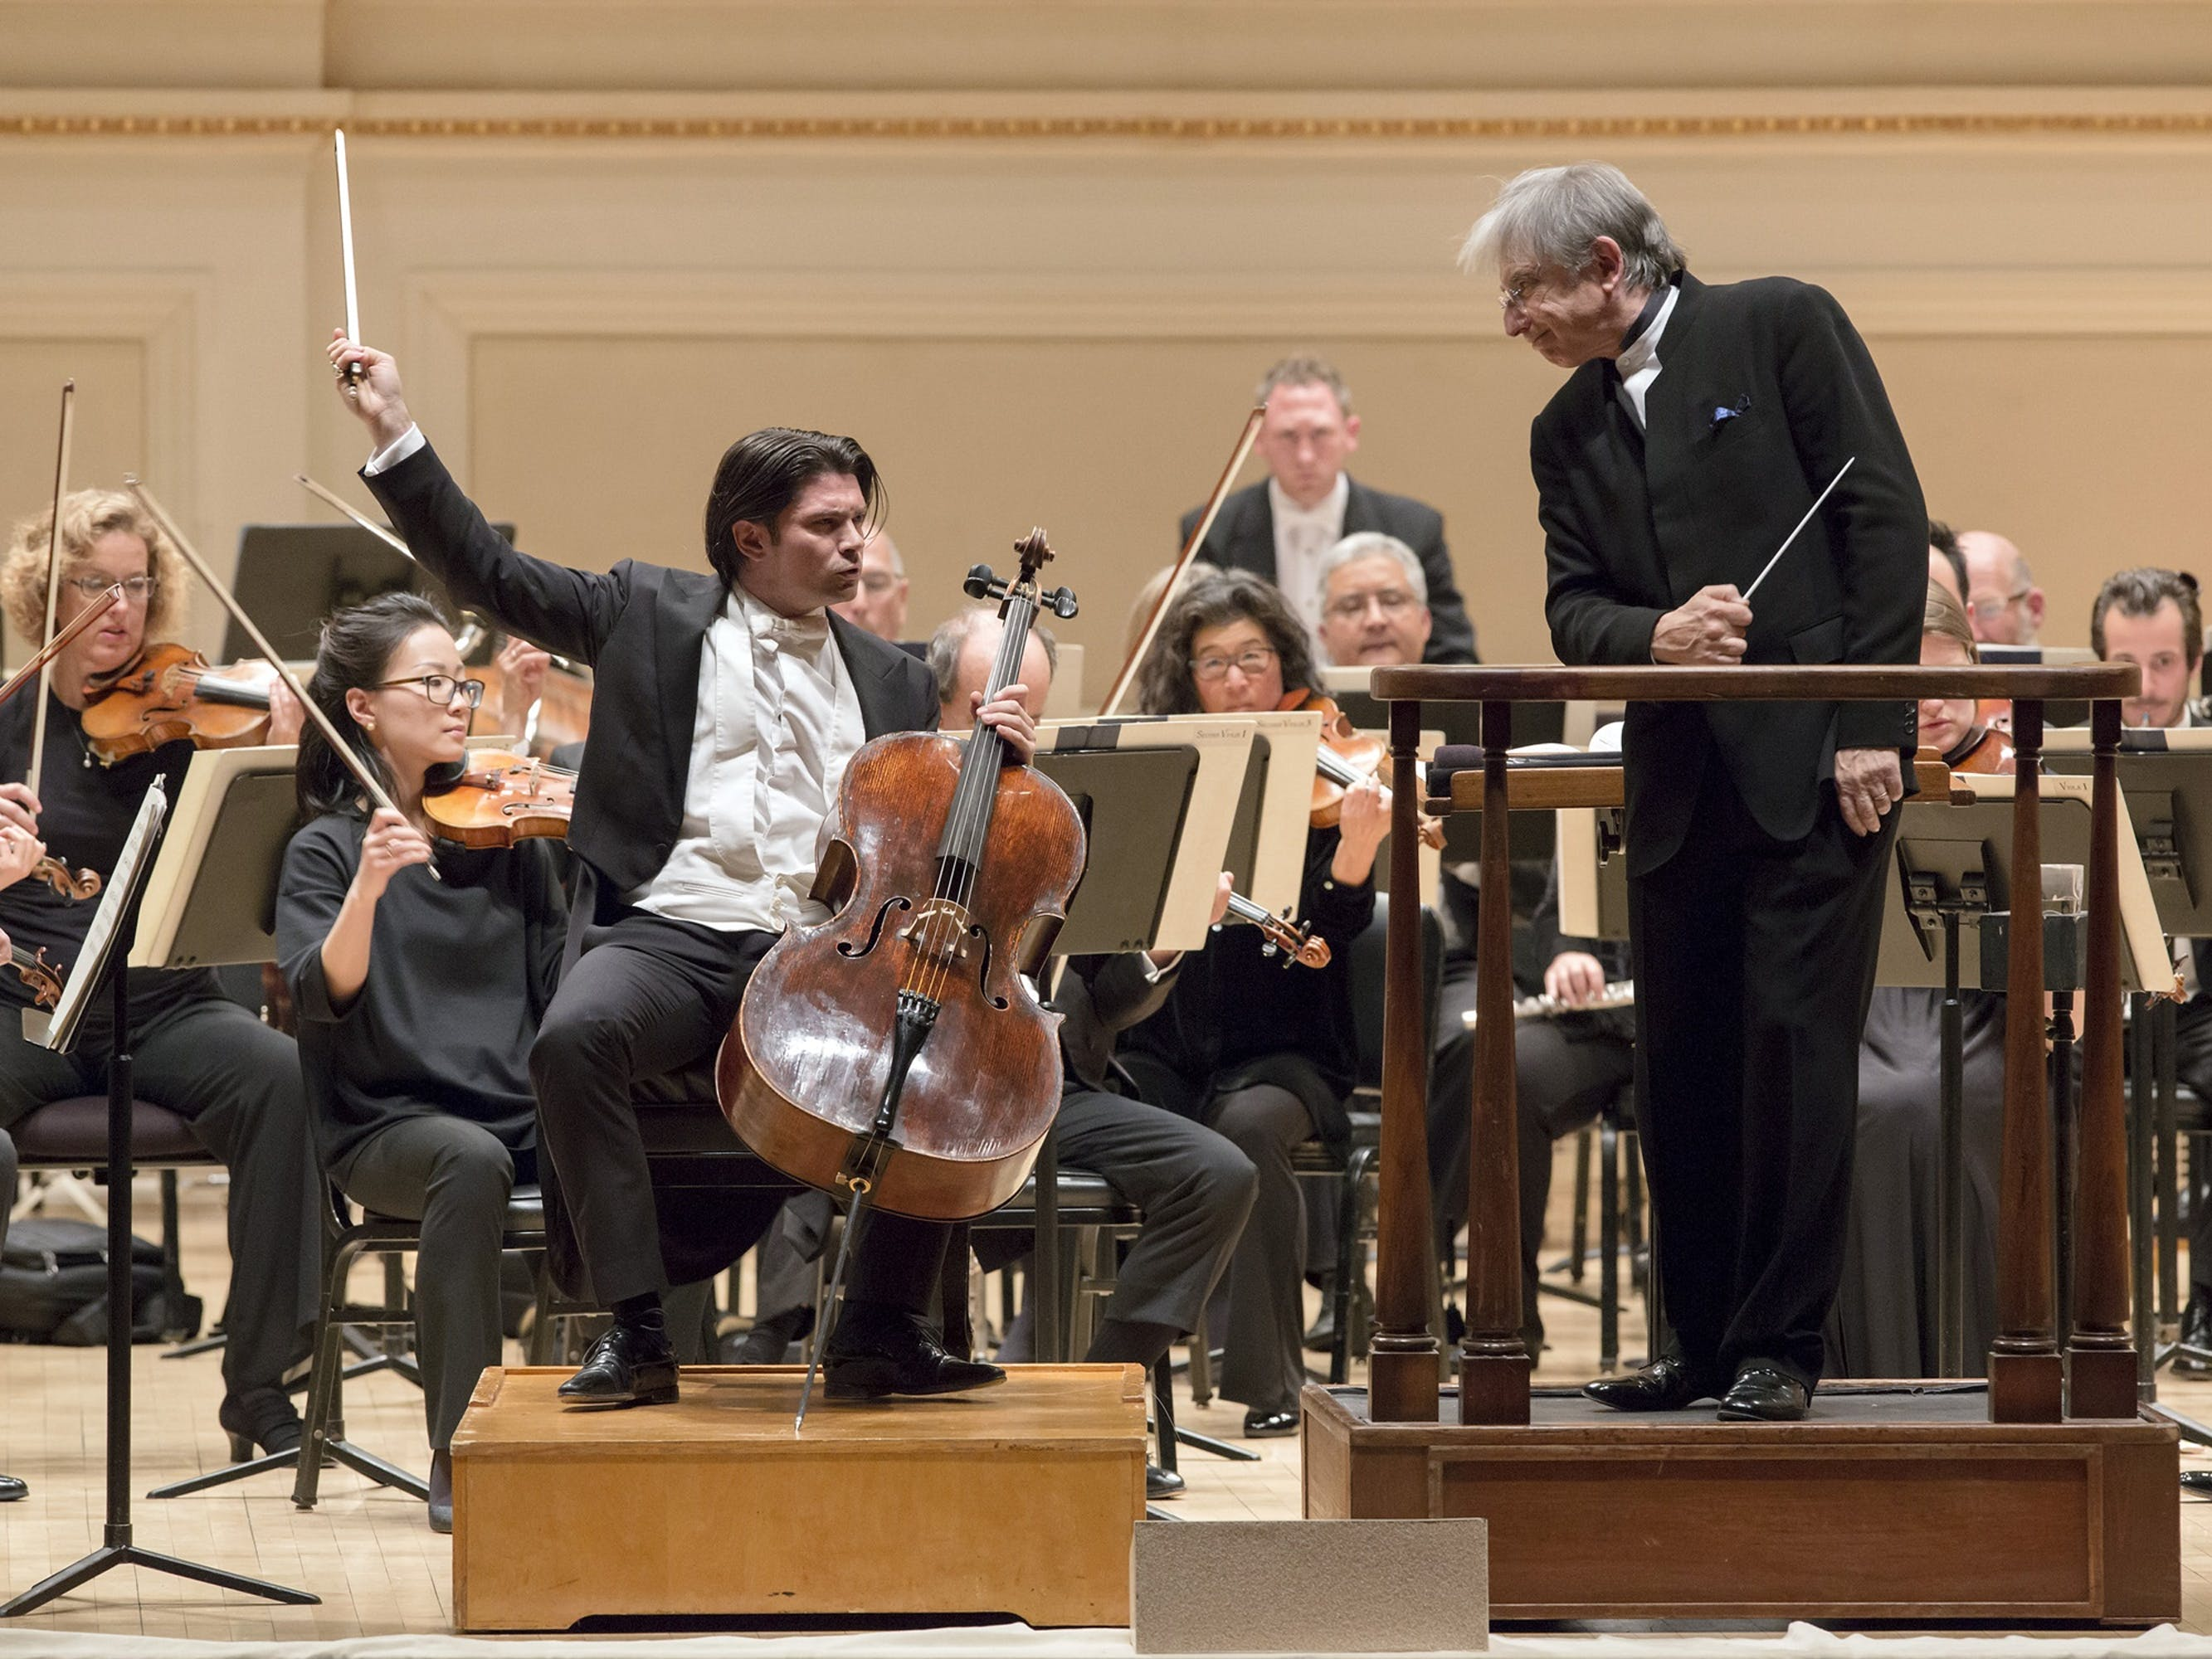 Gautier Capuçon and Michael Tilson Thomas with the San Francisco Symphony, April 2017